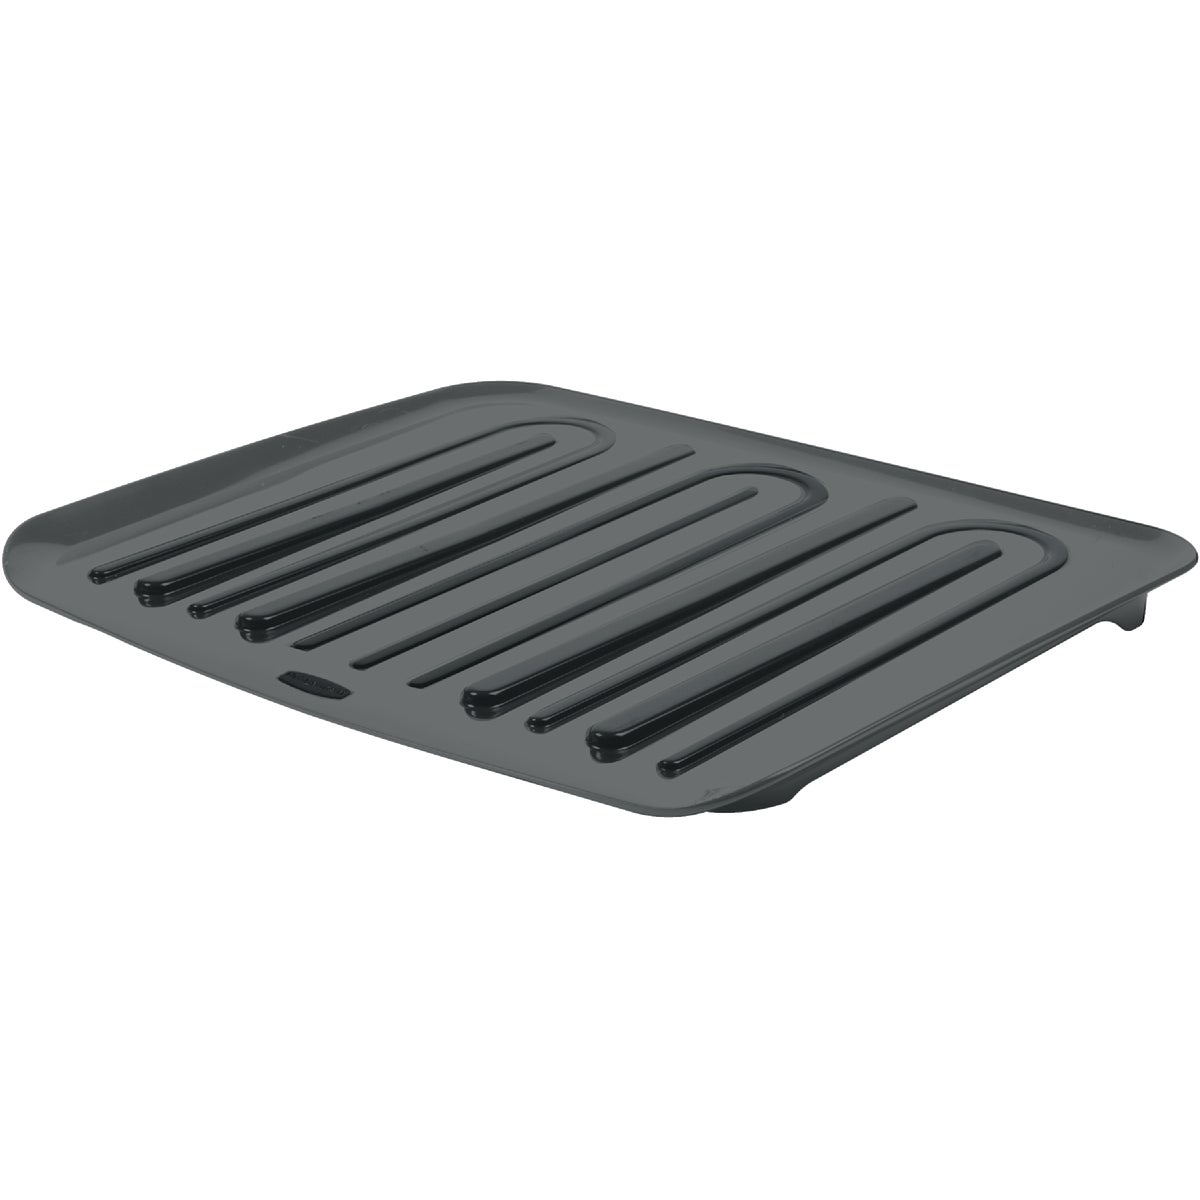 LARGE BLACK DRAINER TRAY - 1182MABLA by Rubbermaid Home